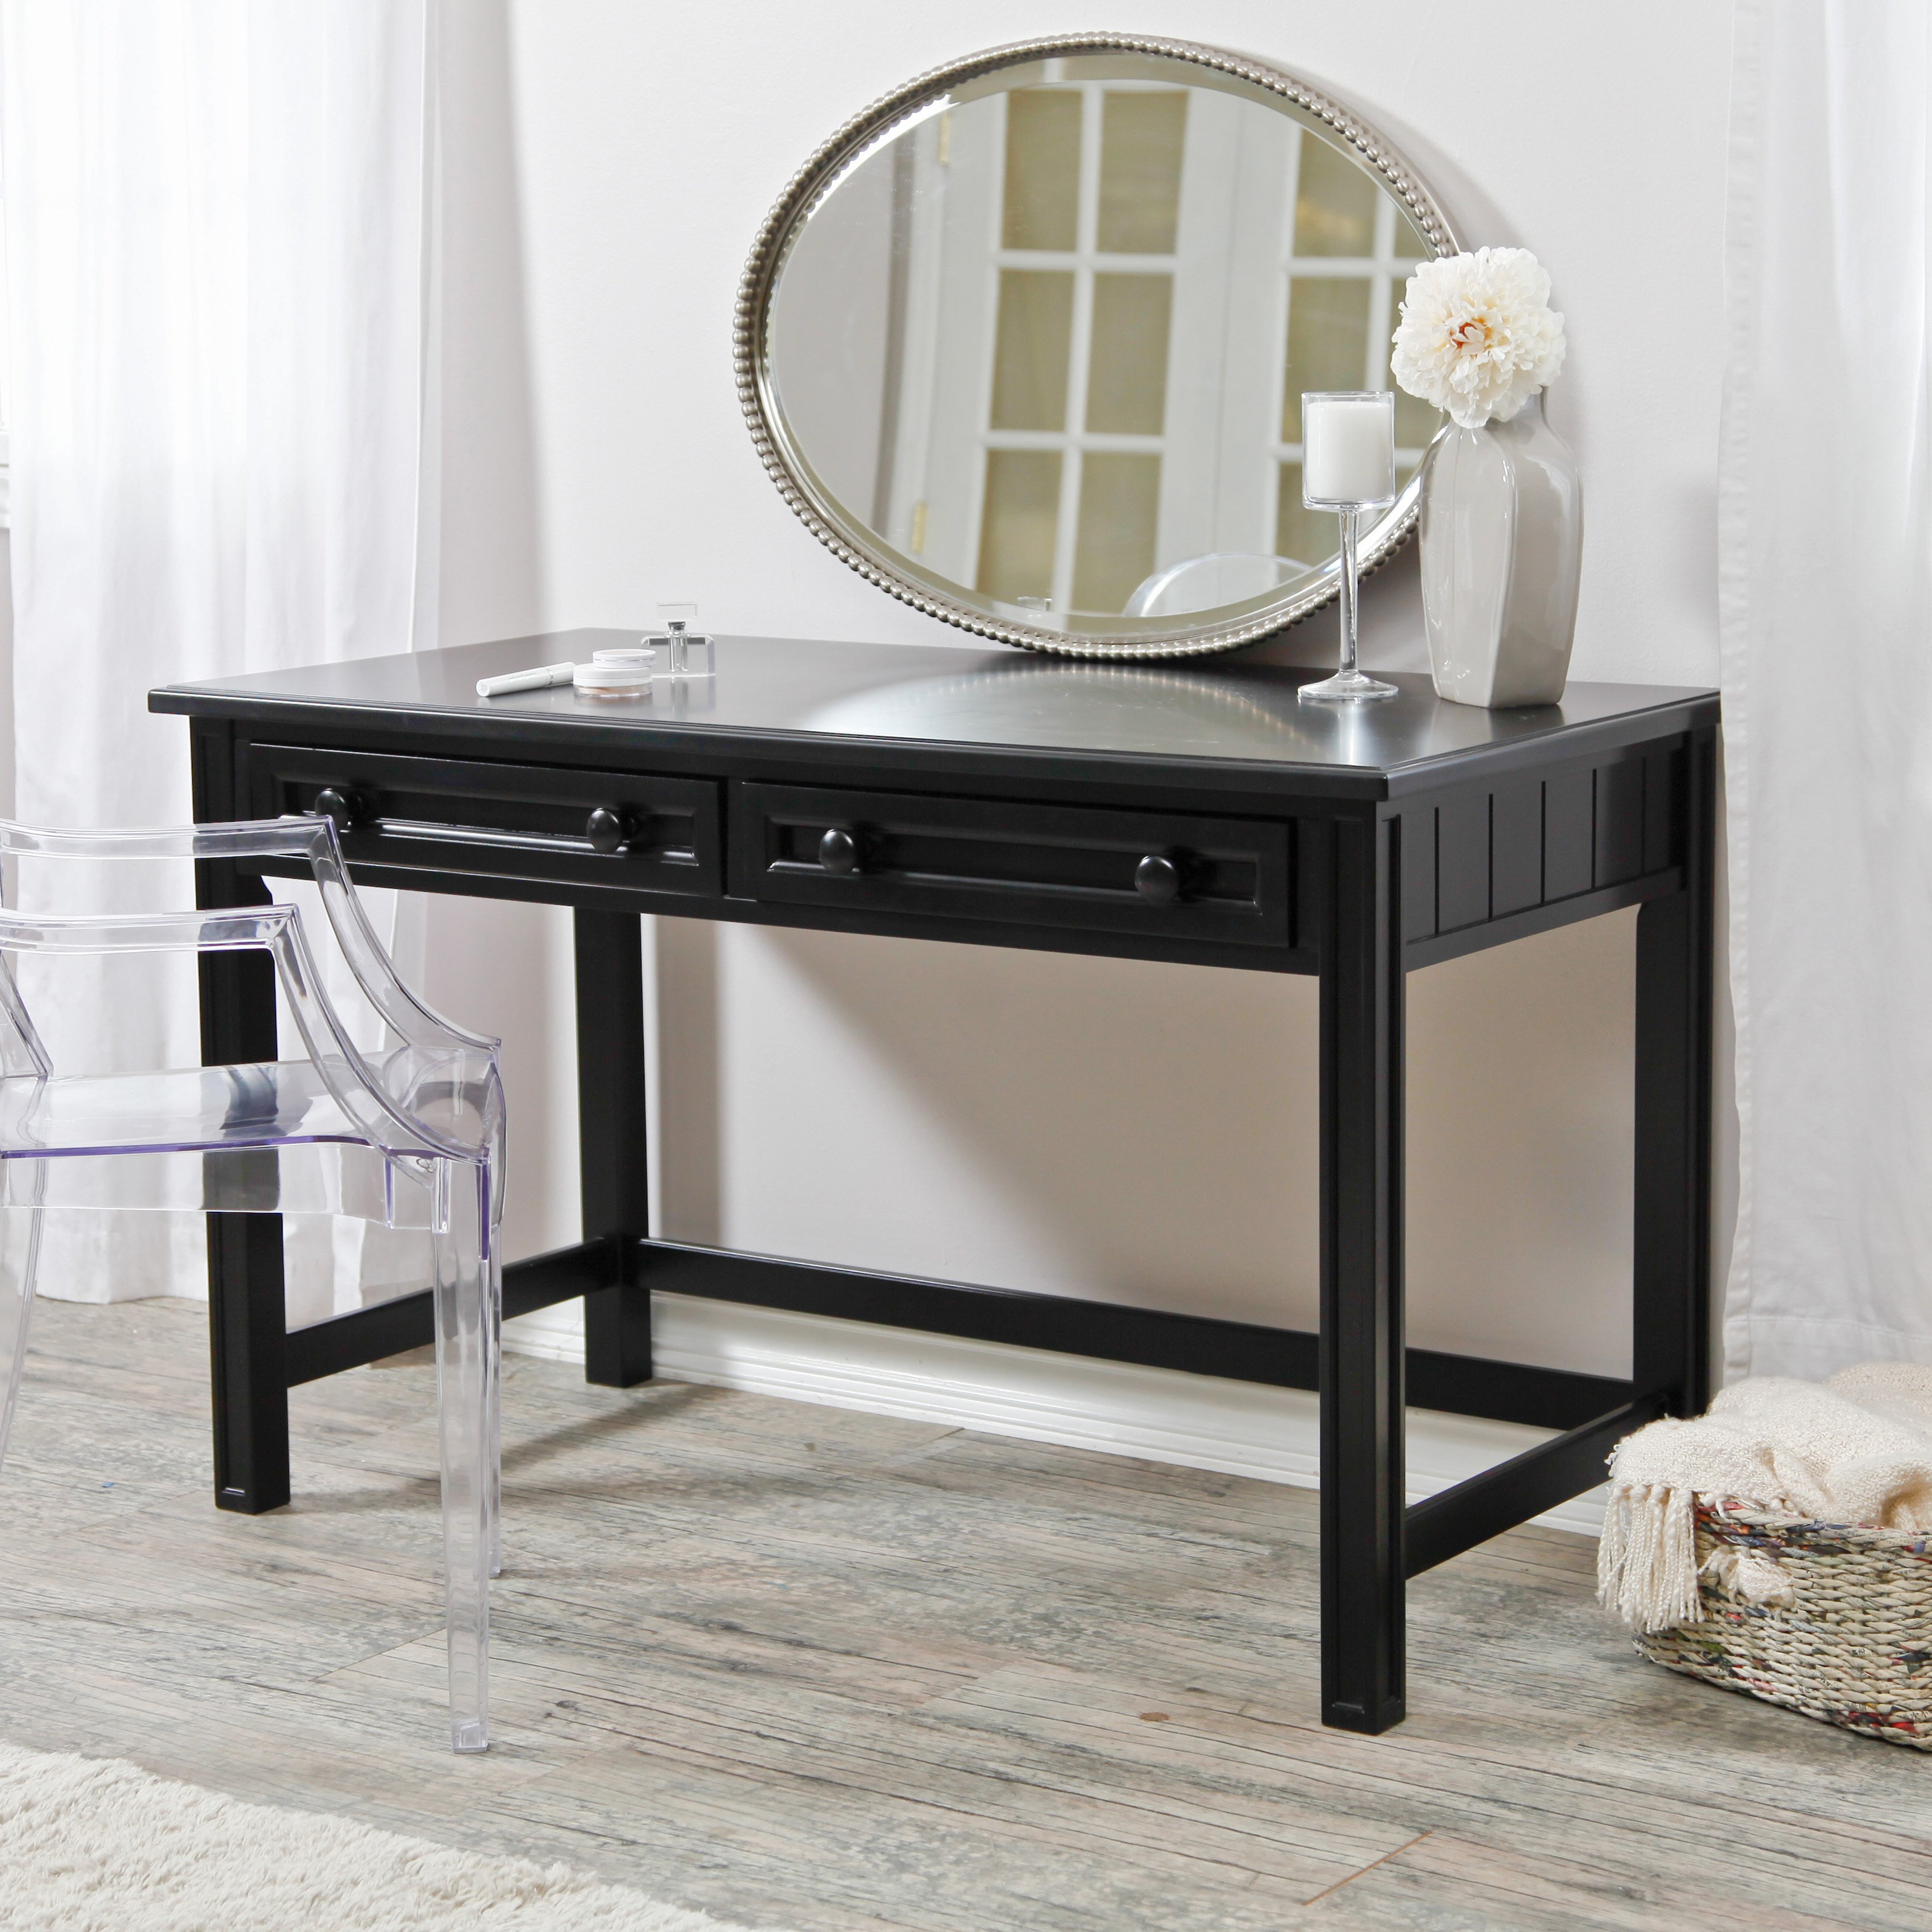 Mirrored Vanity Set | Vanity Set Brush Comb Mirror | Bedroom Vanities with Lights